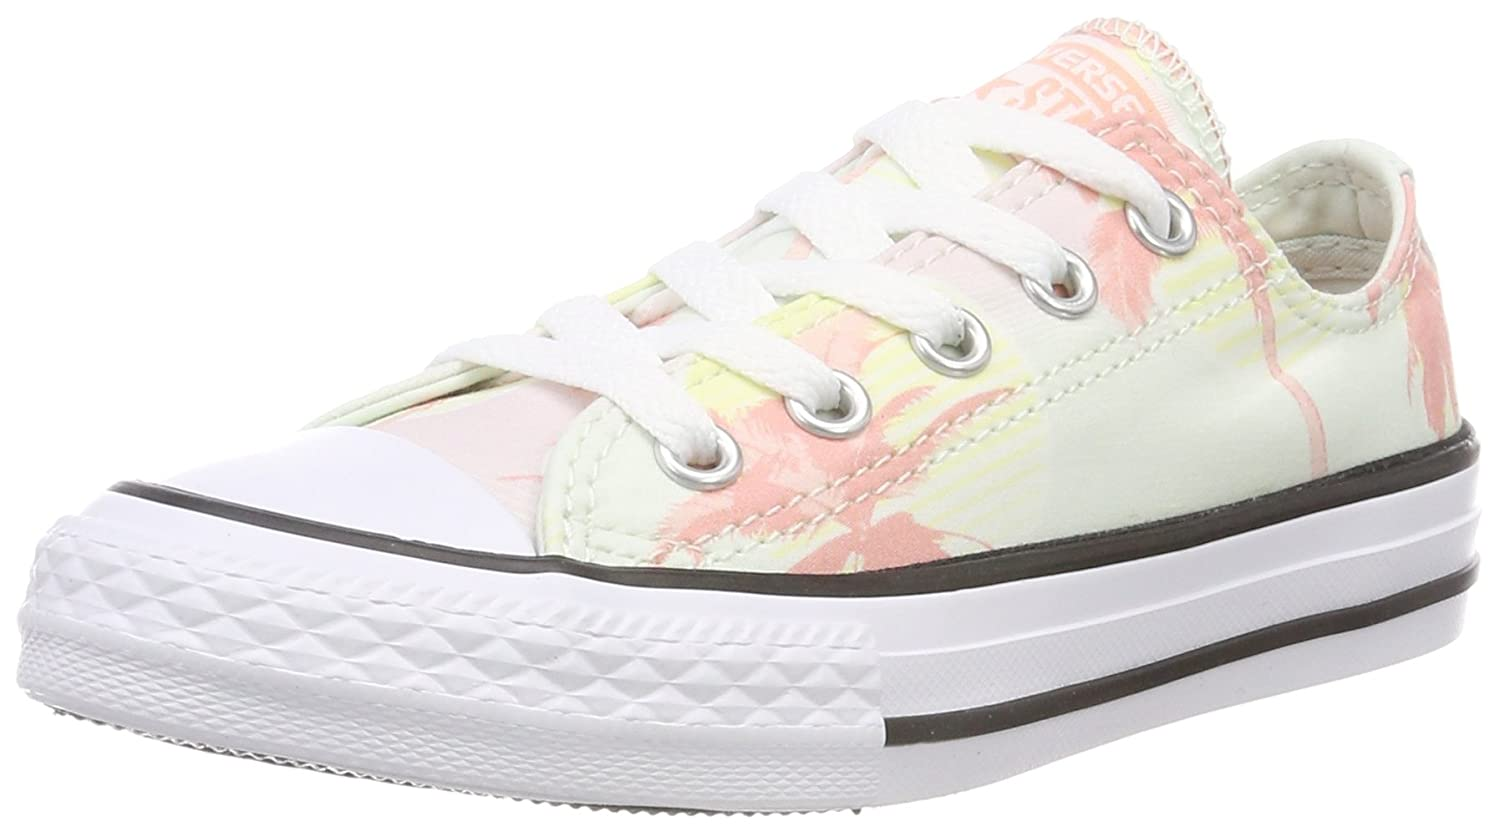 Converse Unisex-Kinder CTAS OX Fitnessschuhe  37/38 EU|Gr眉n (Barely Green/Pale Coral/White 315)